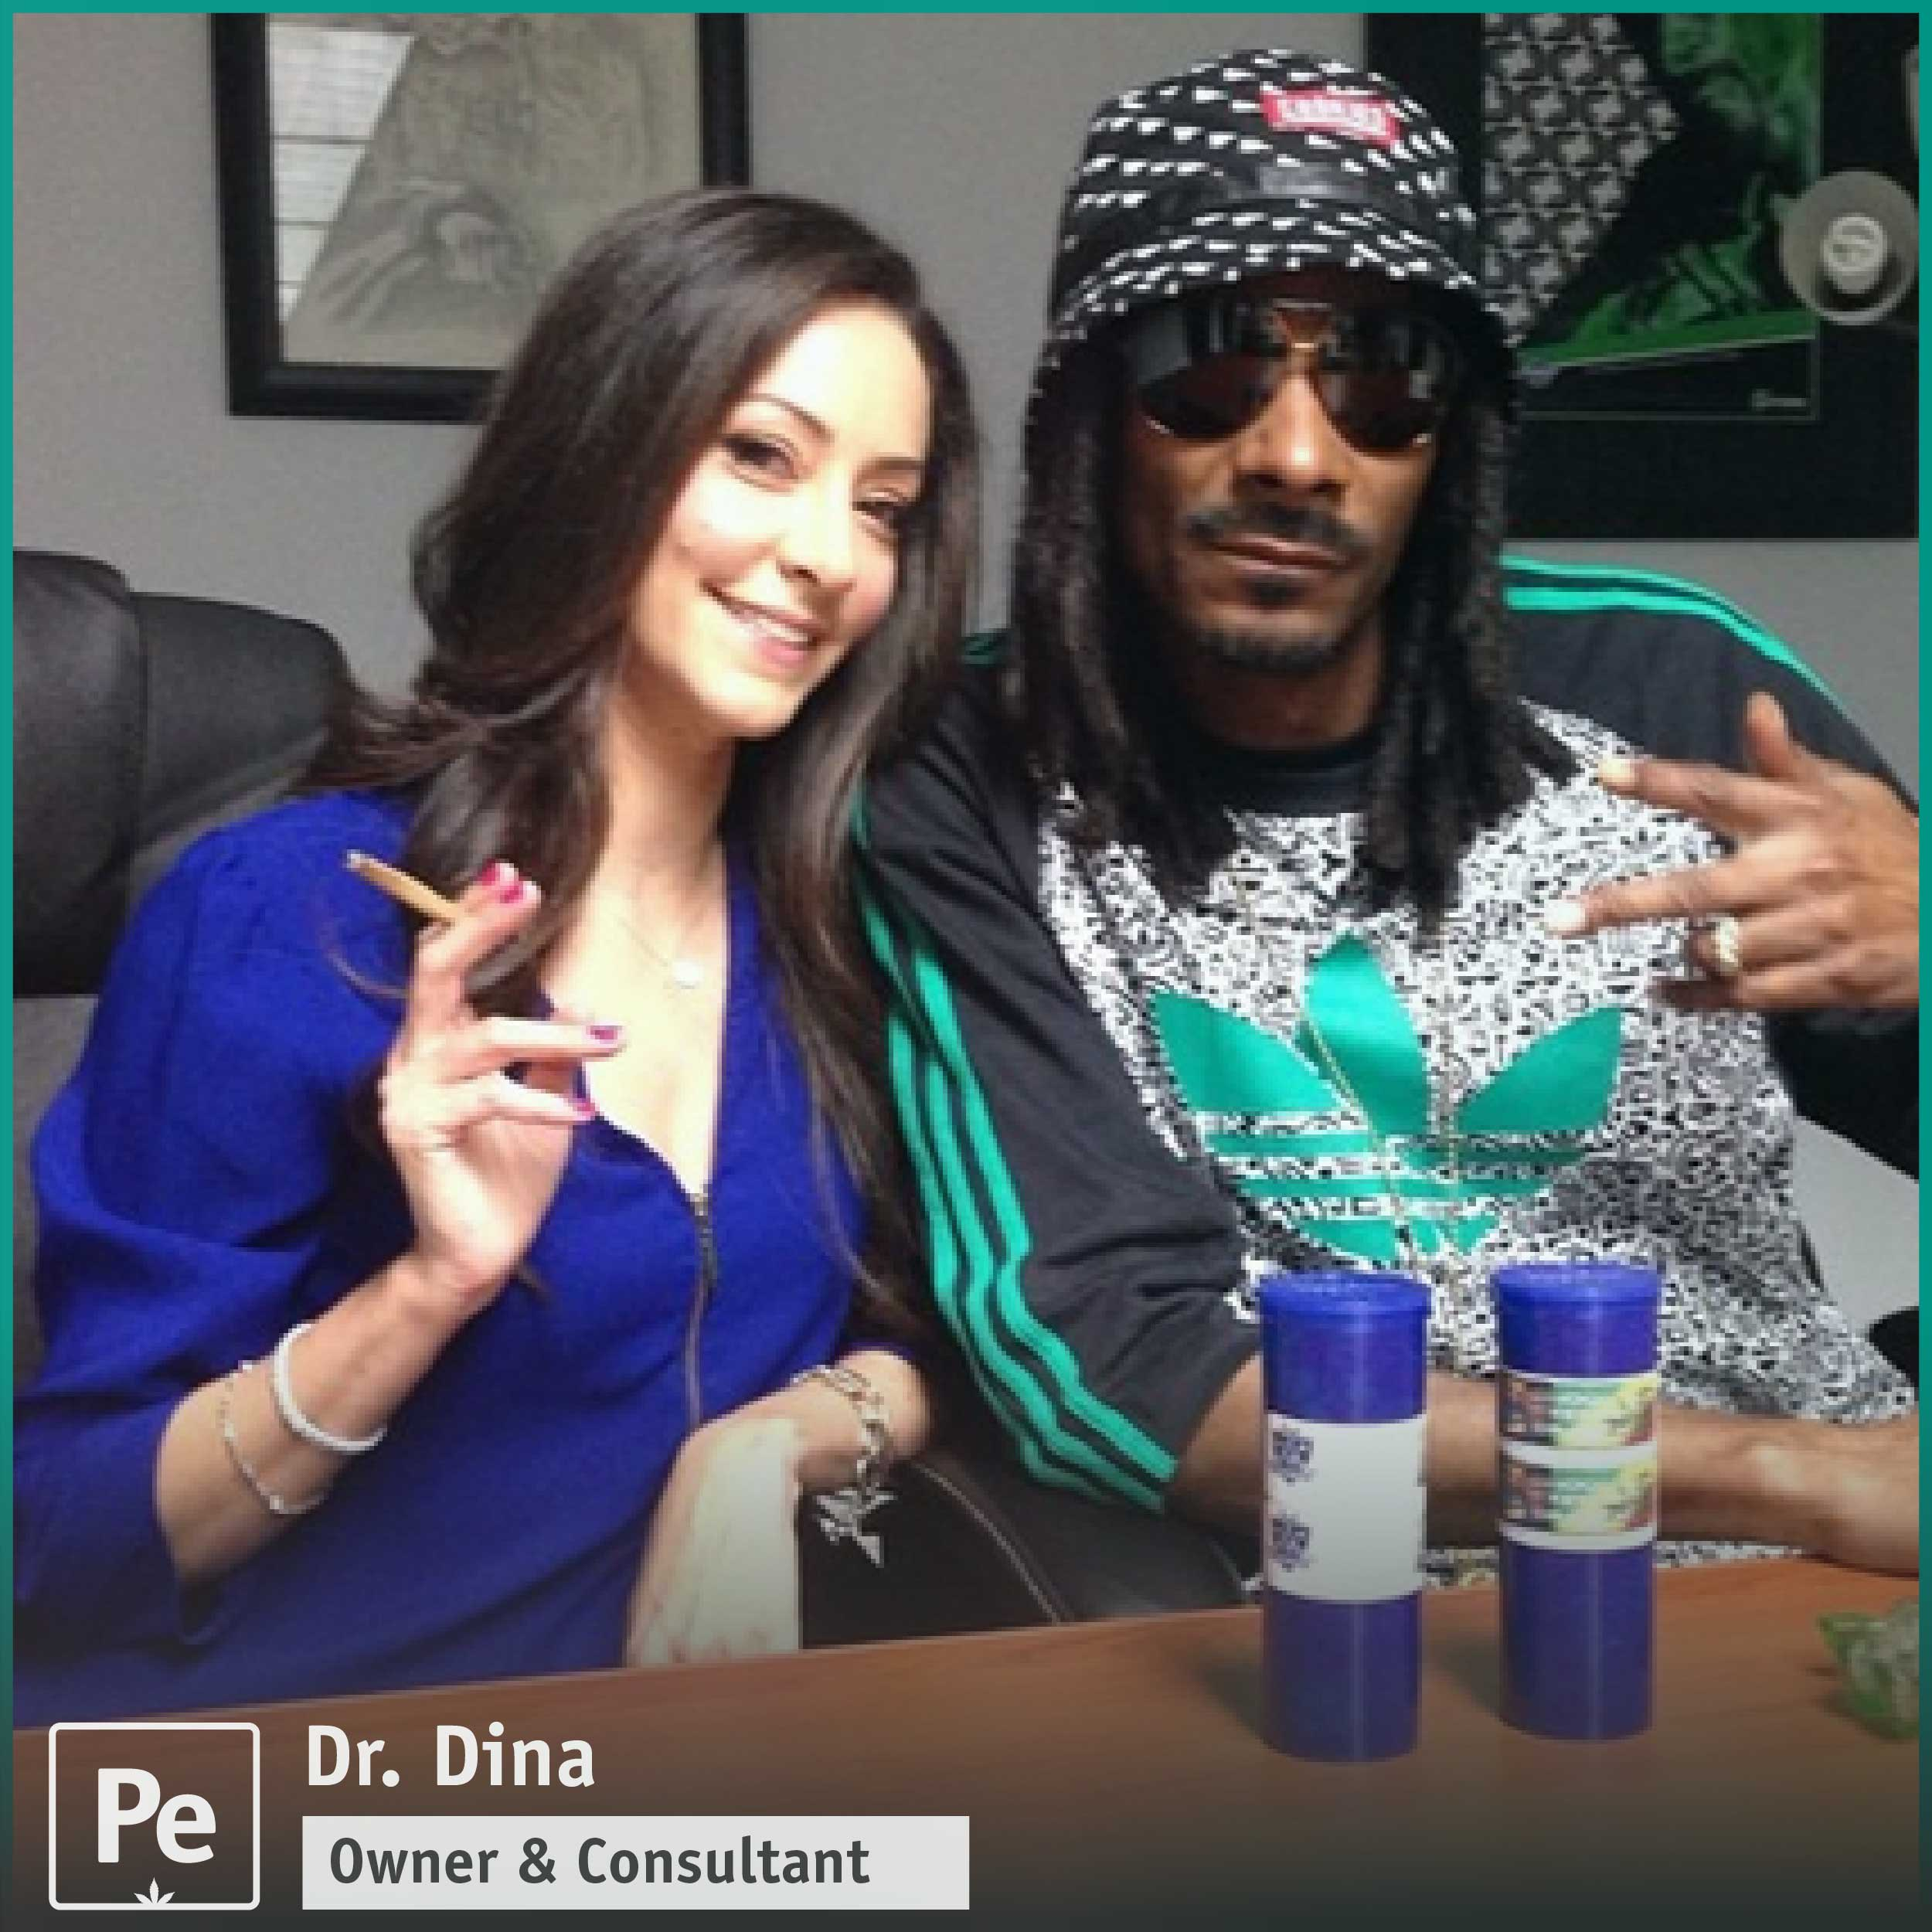 Dr. Dina, cannabis consultant on Netflix Disjointed and dispensary owner in California